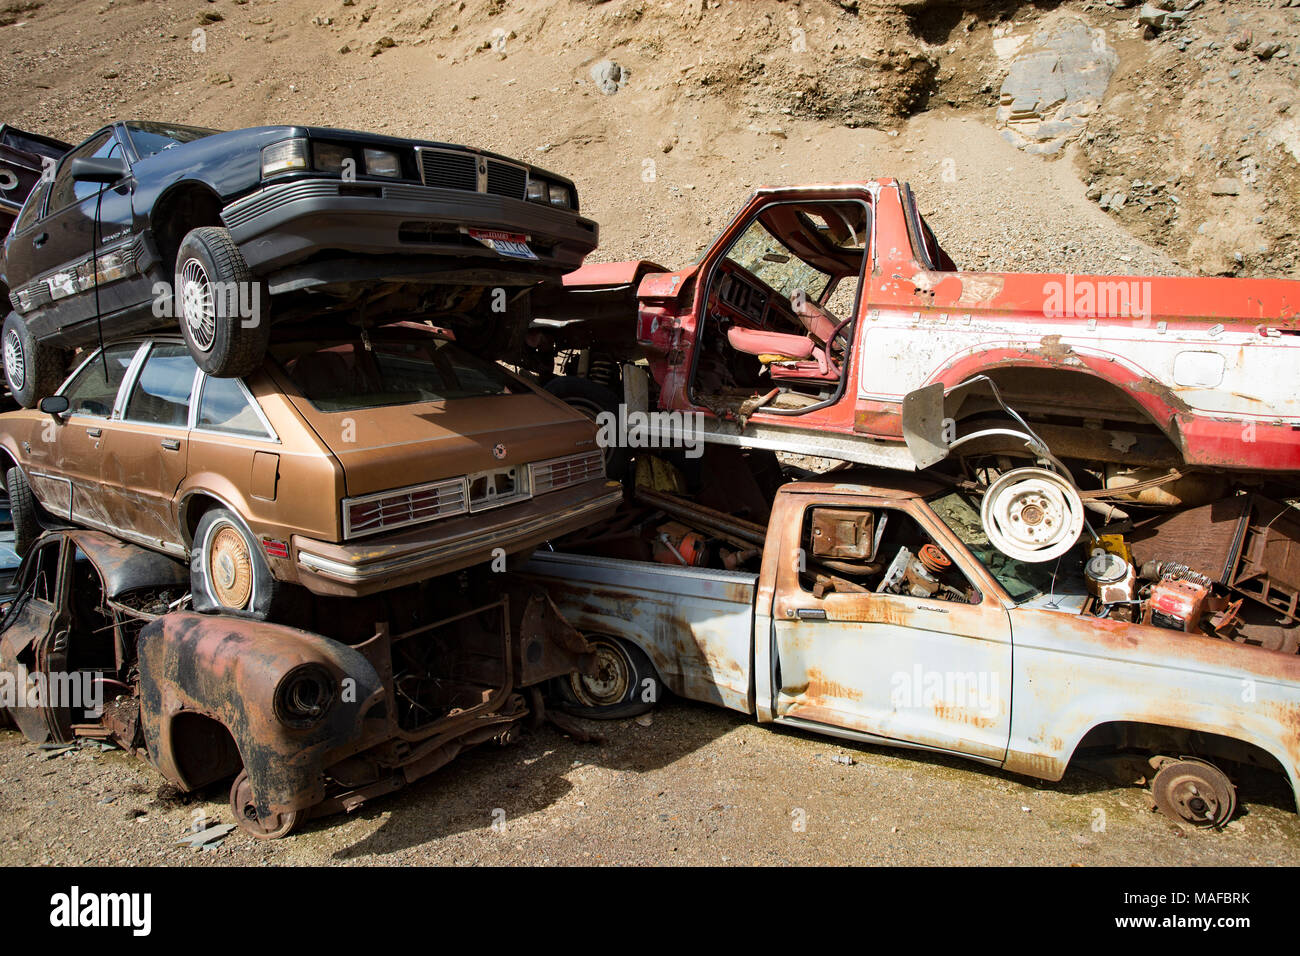 A stack of old junk cars and trucks in an stone quarry, east of ...